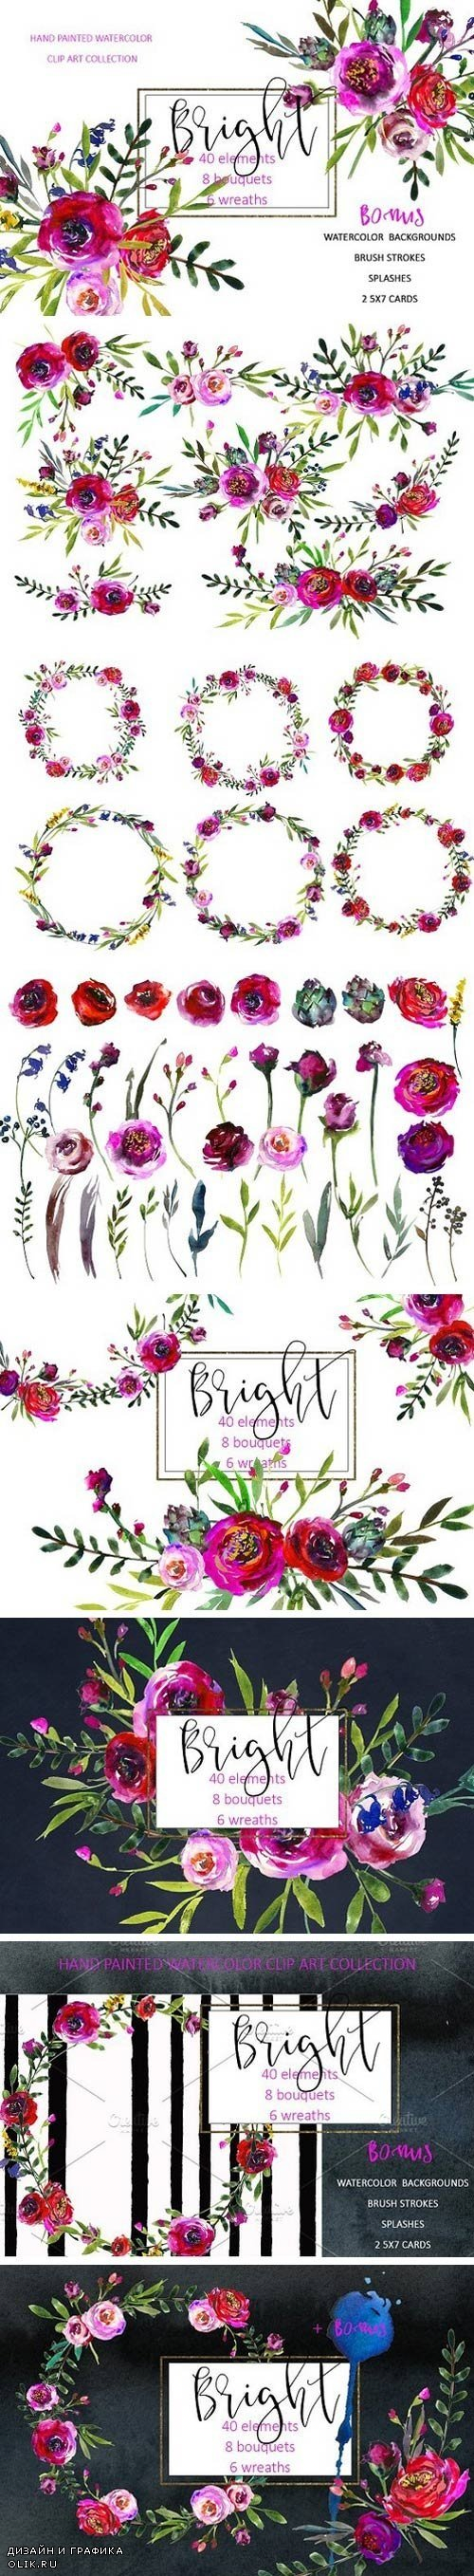 Bright Purple Watercolor Flowers 897992